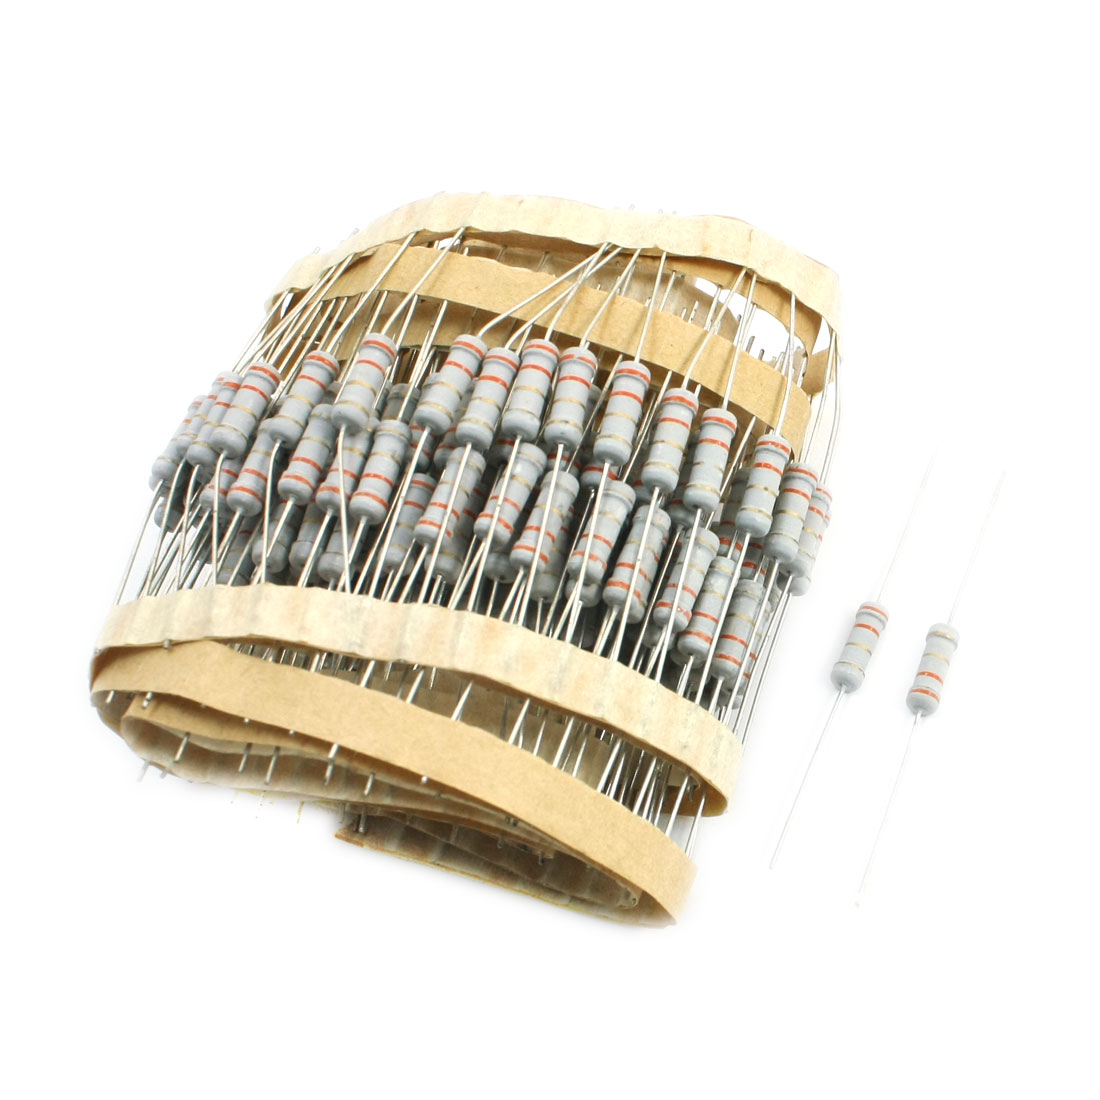 200 Pcs 3.3 Ohm 5% Tolerance 1Watt Power Axial Leading Type Through Hole Mounting 4 Color Ring Carbon Film Fixed Resistors